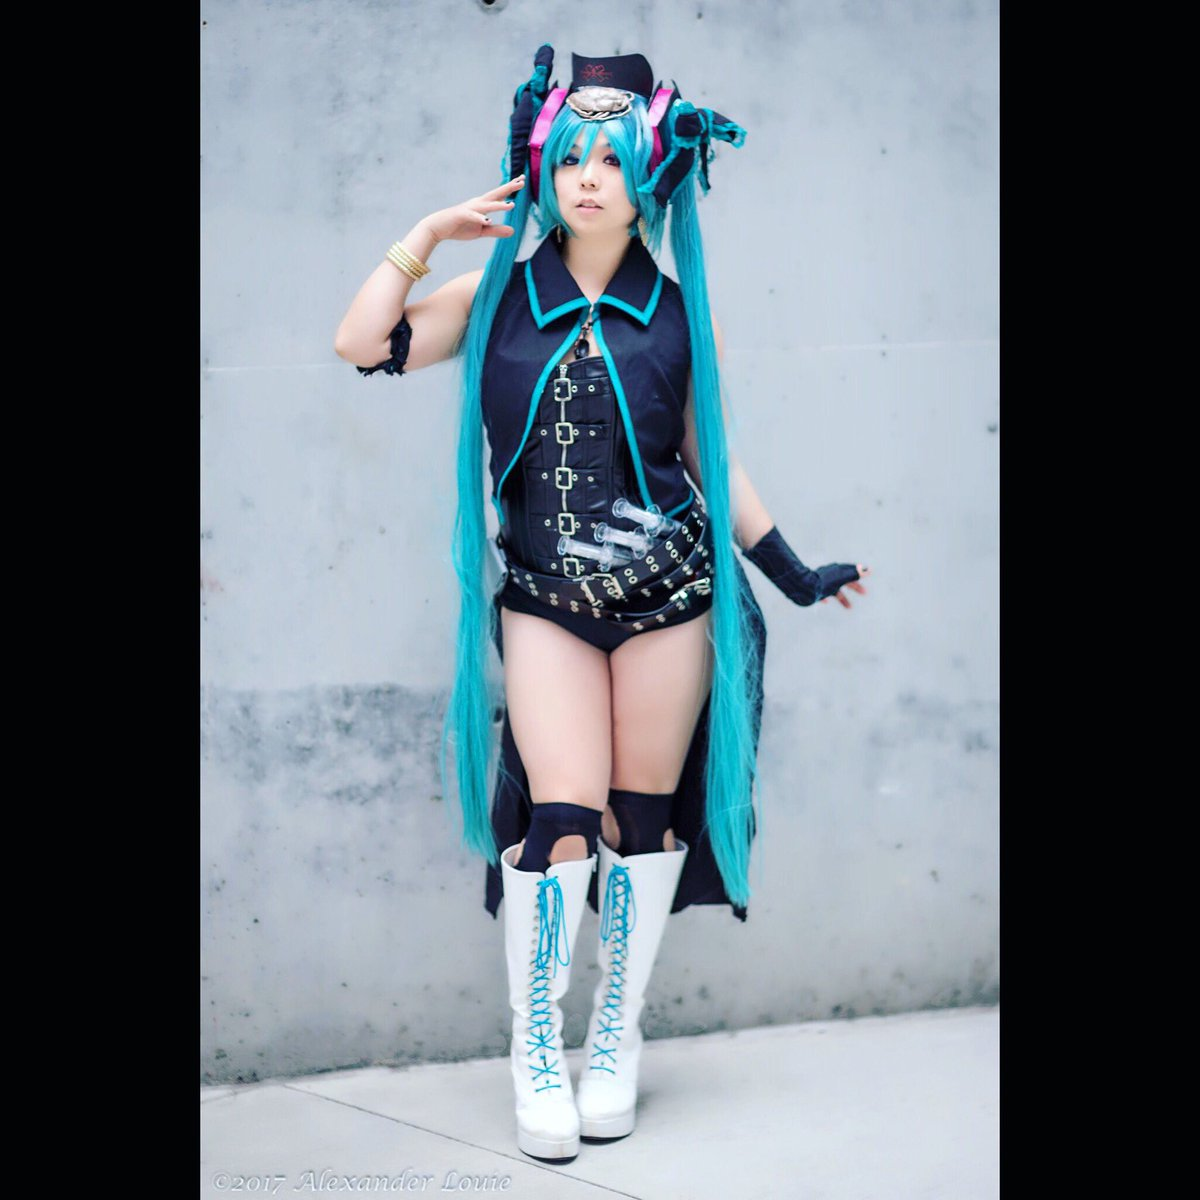 When you have to make your #cosplay more con-safe! Wore a corset to cover up  @cfm_miku_en @cfm_miku #HatsuneMiku #calneca #mikucosplay<br>http://pic.twitter.com/q0ciIjDrGT